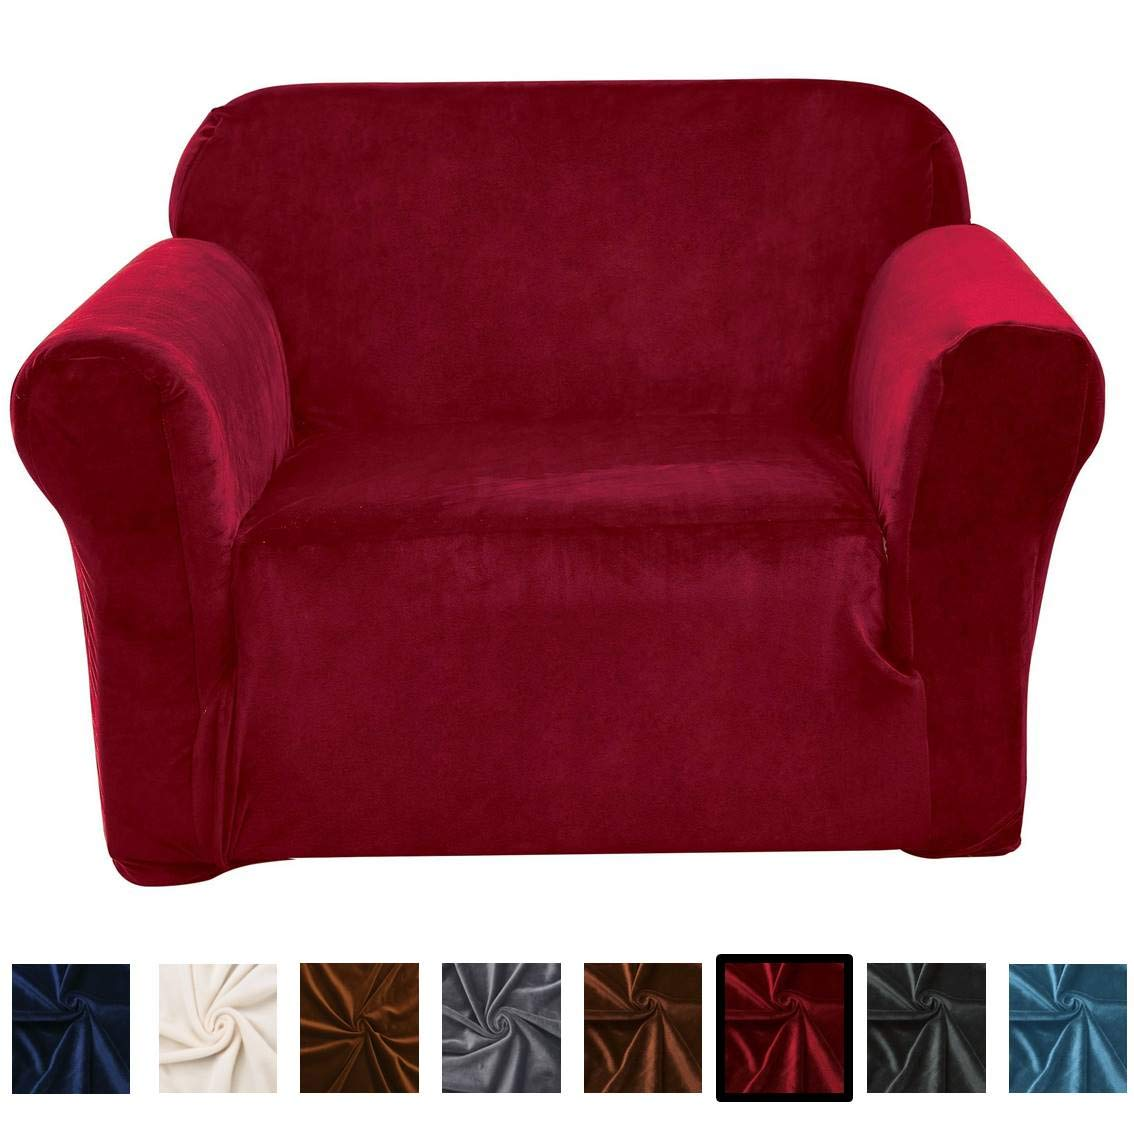 Argstar Velvet Stylish Recliner Covers Wine Red Washable Furniture Covers for Recliners